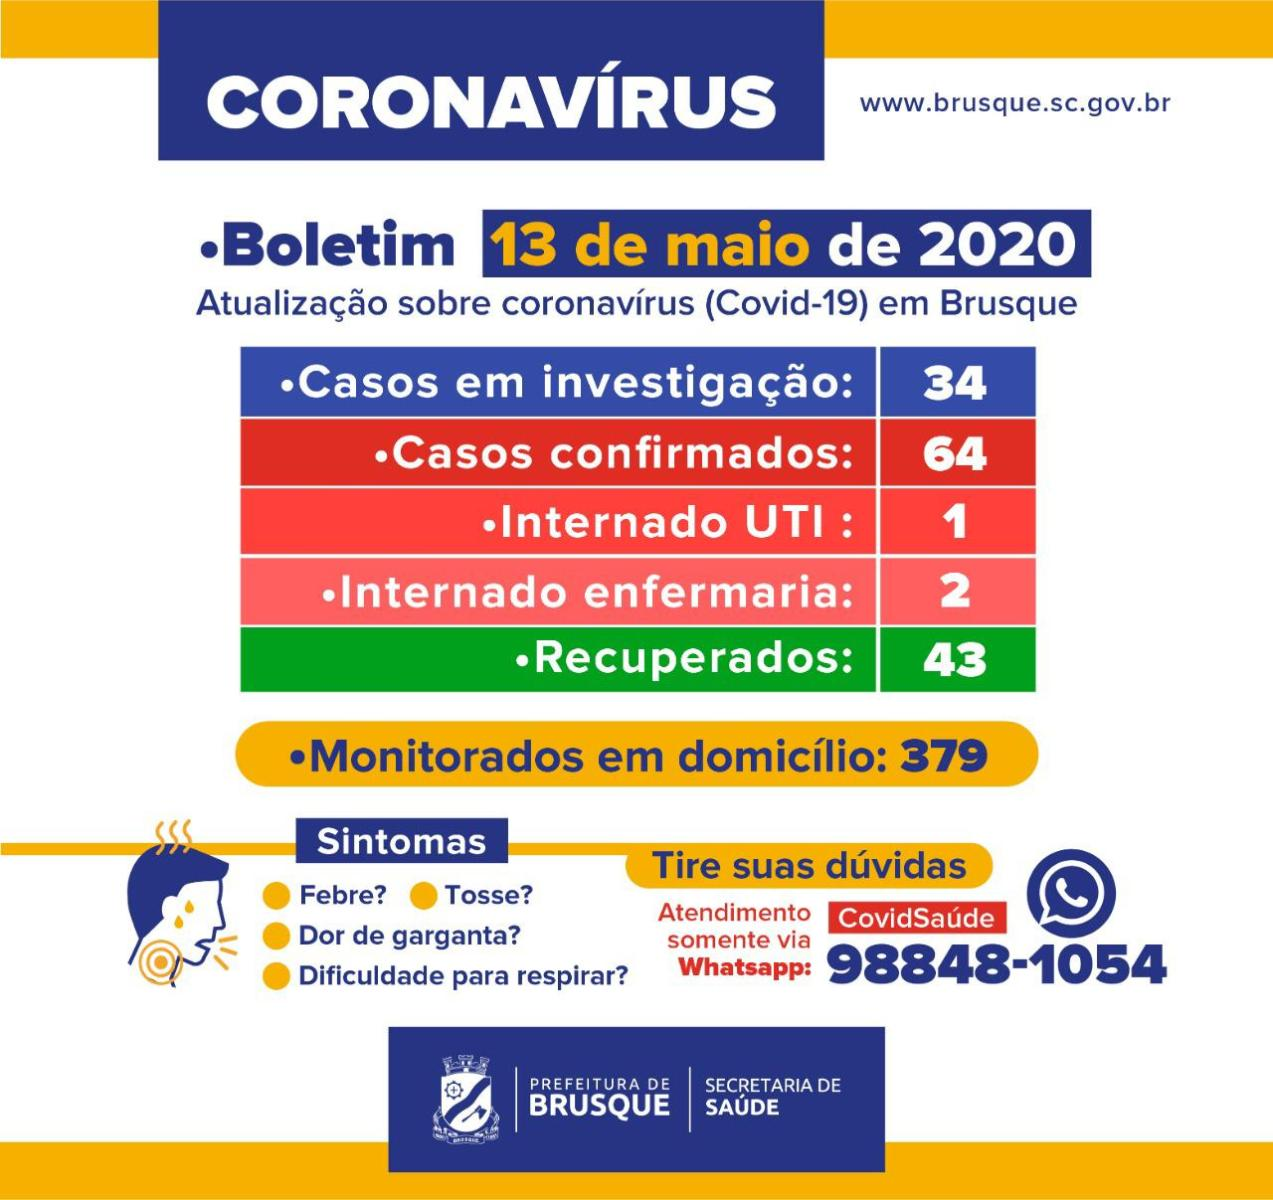 Brusque registra 64 casos do novo coronavírus